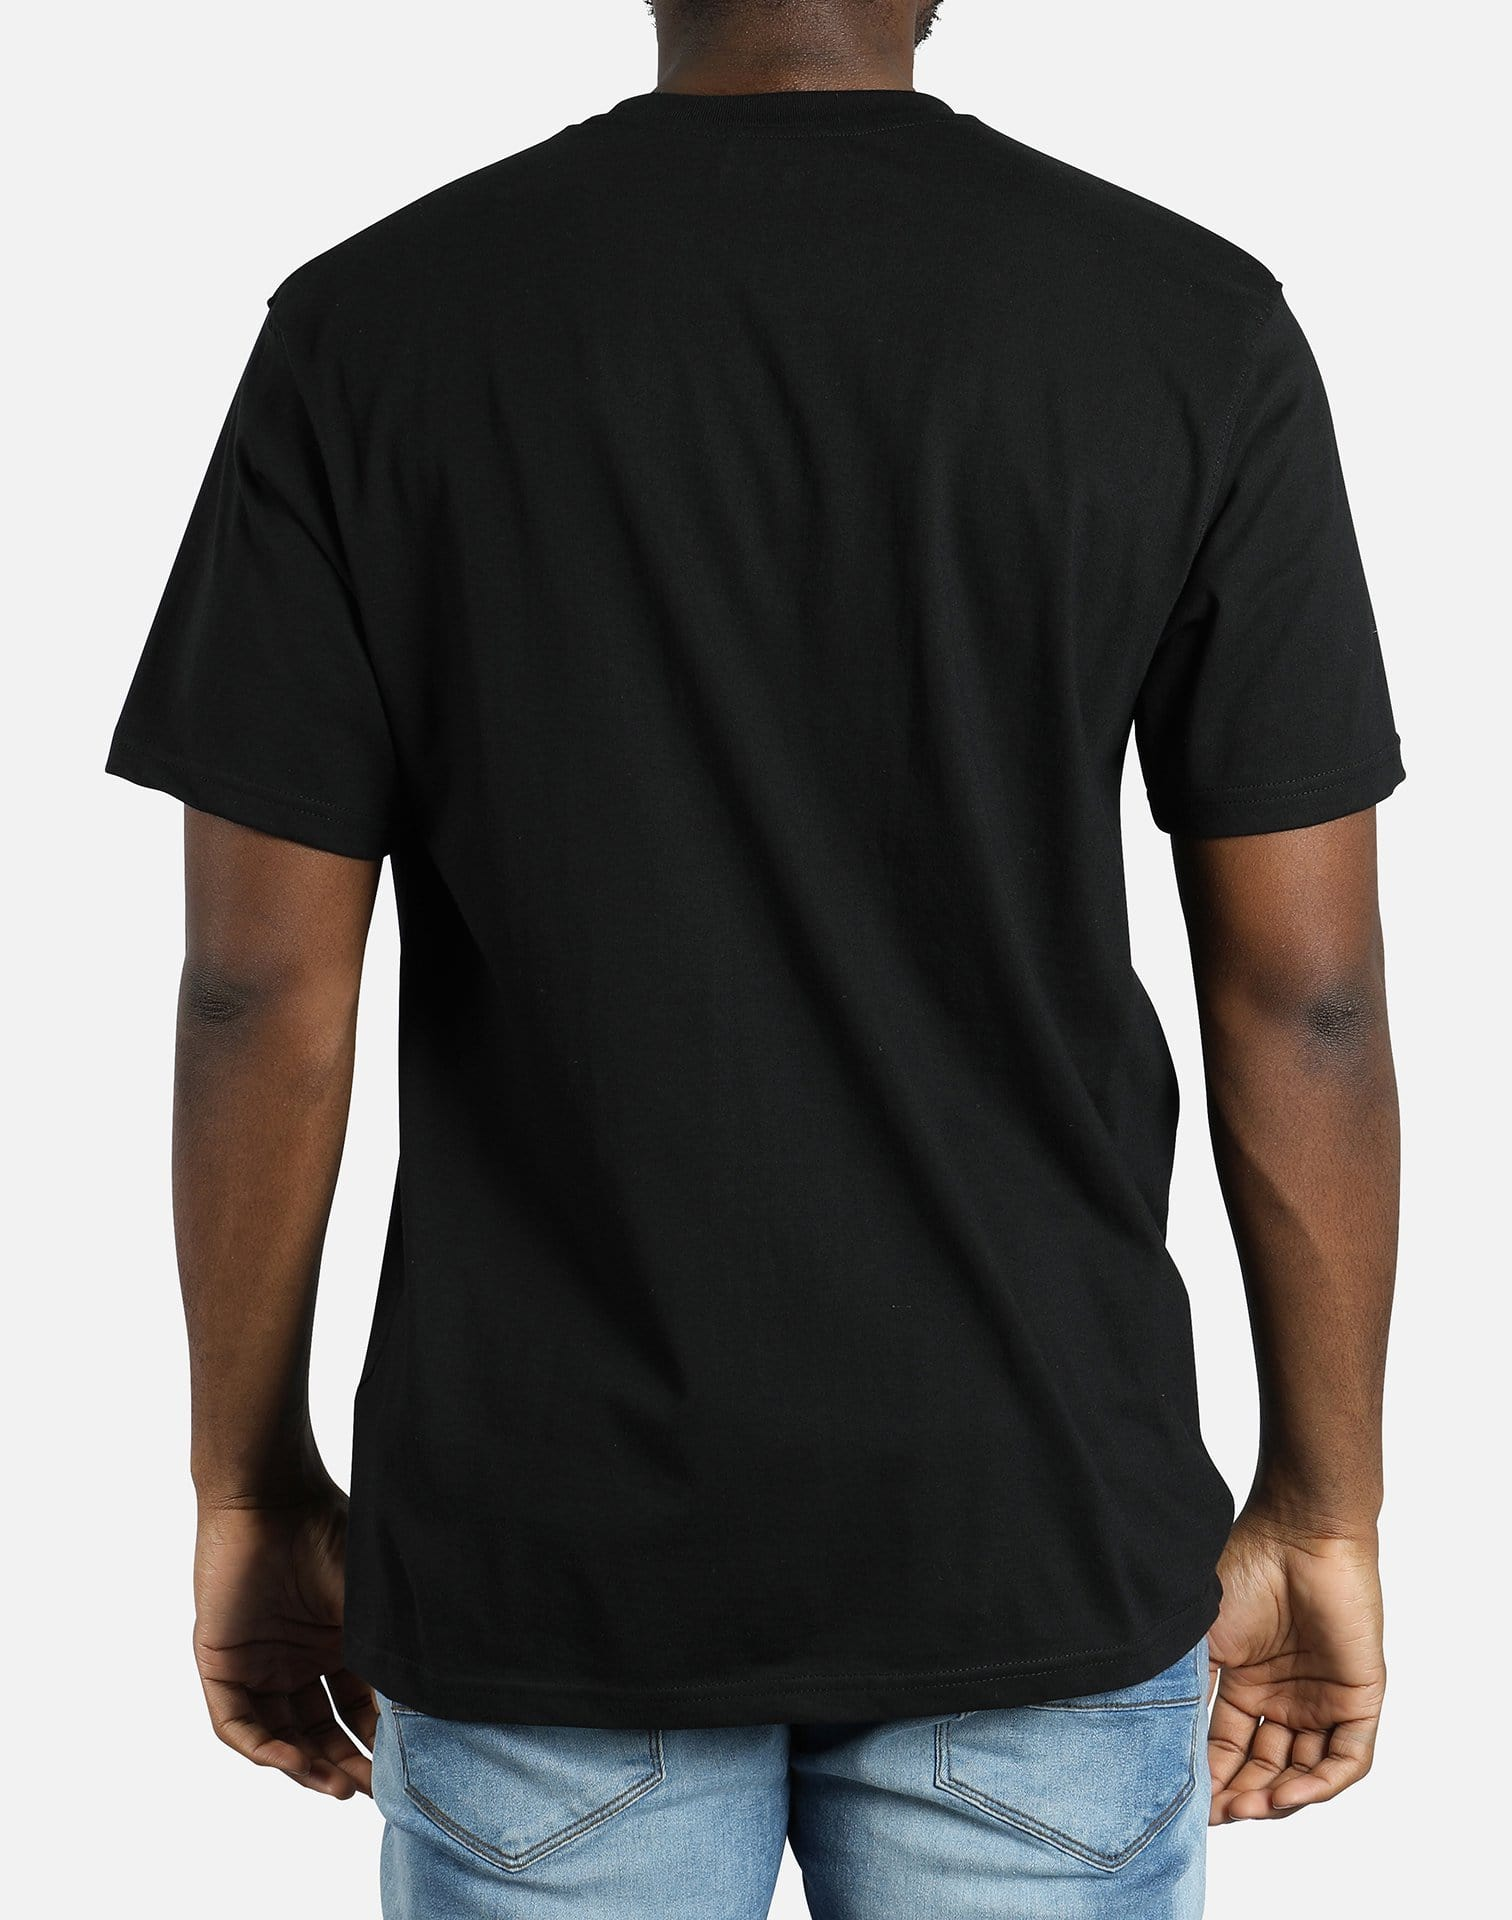 Staple Patches Short Sleeve Tee